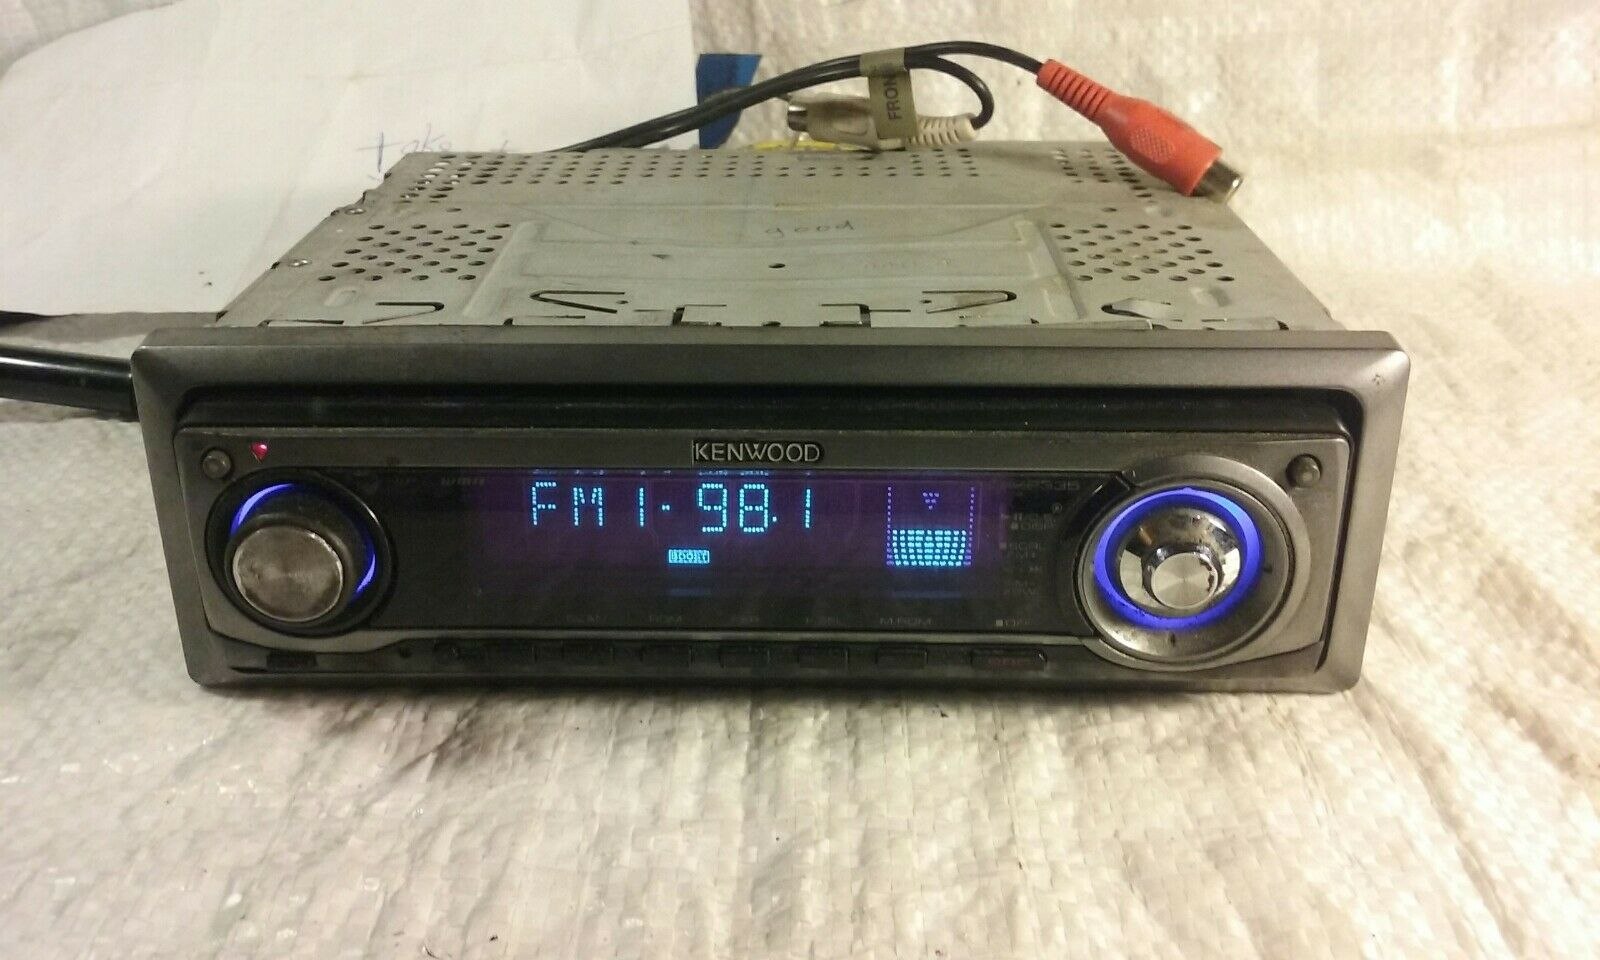 Kenwood Kdc Mp335 Cd Player In Dash Receiver 8499 Picclick Mp338 Wiring Diagram Colors 1 Of 2only Available